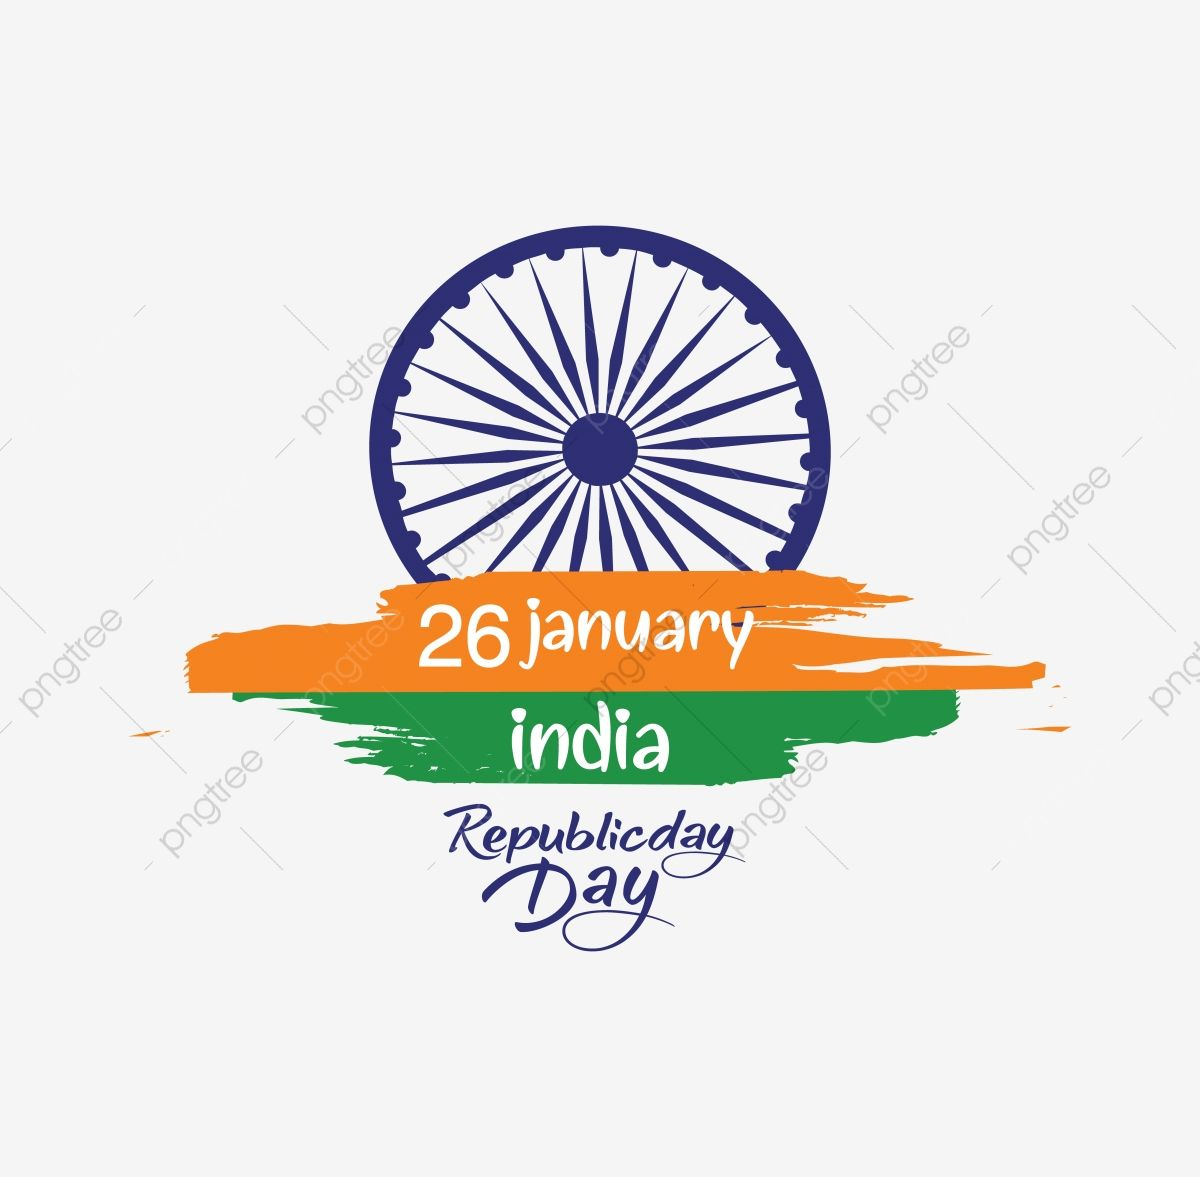 Indian Republic Day Concept With Text 26 January Vector Text Icons Day Icons Concept Icons Png And Vector With Transparent Background For Free Download Indian Republic Day India Republic Day Images